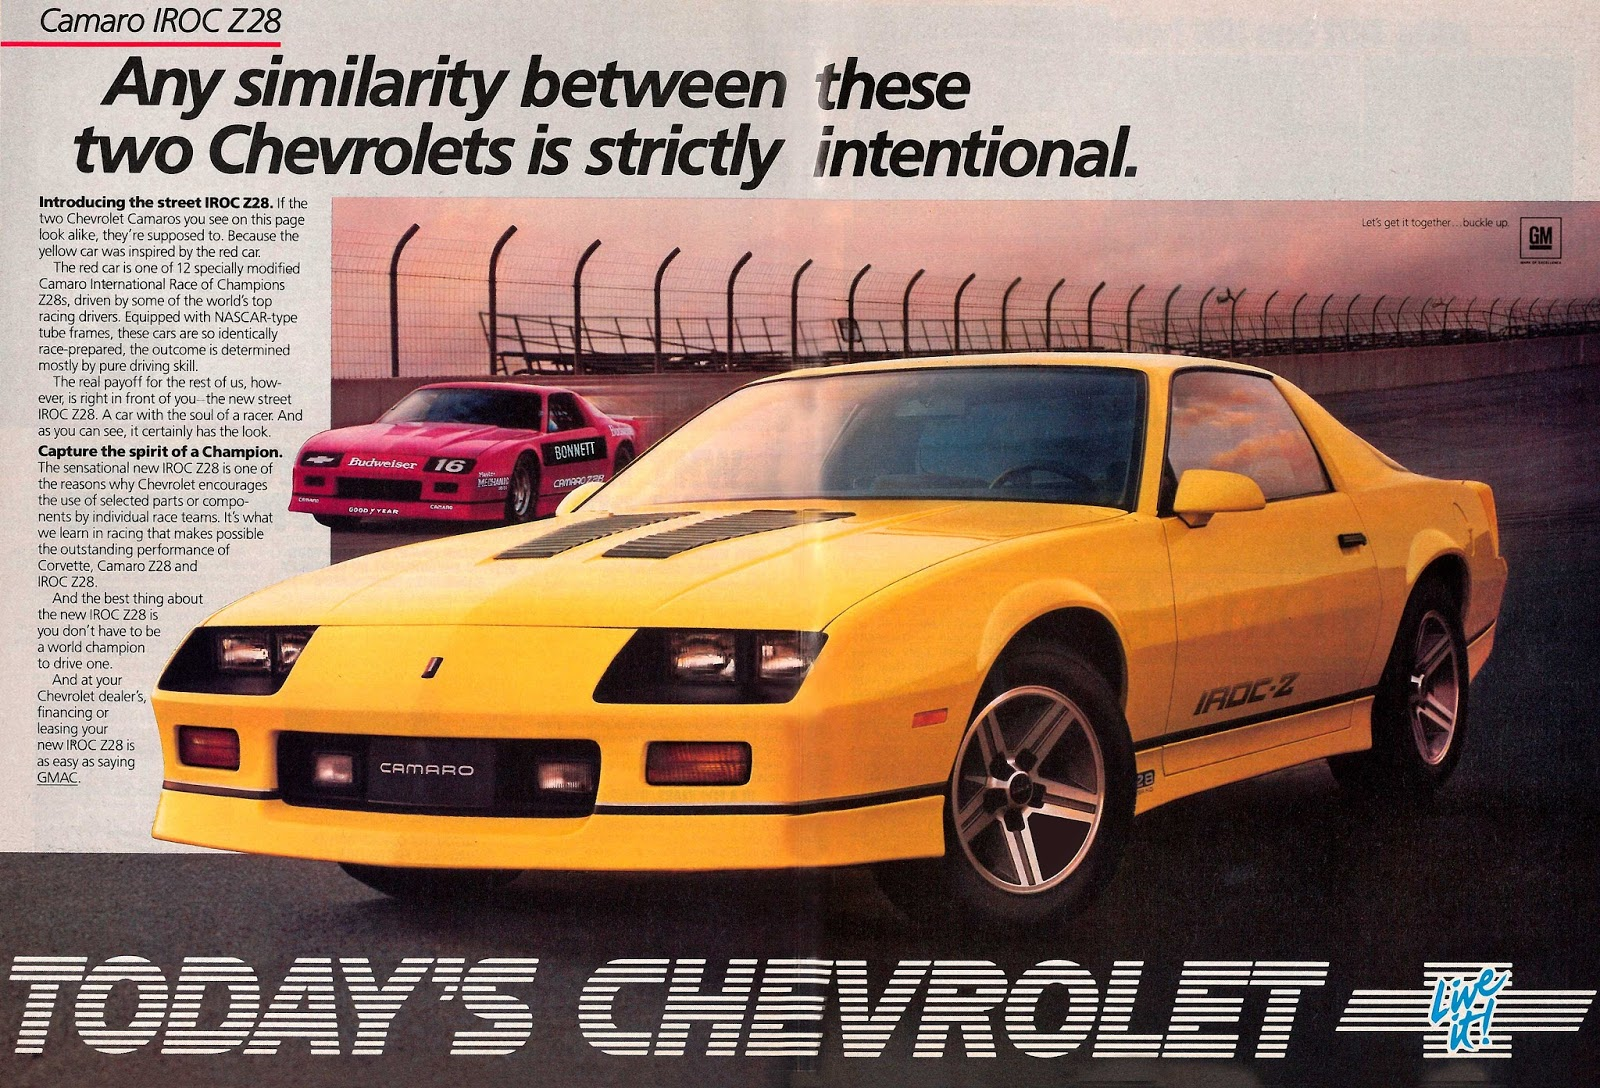 In The New Paramount Transformers Films Blebee Is A Chevy Camaro Which Would Lead Me To Guess That Iroc Z Likely Choice